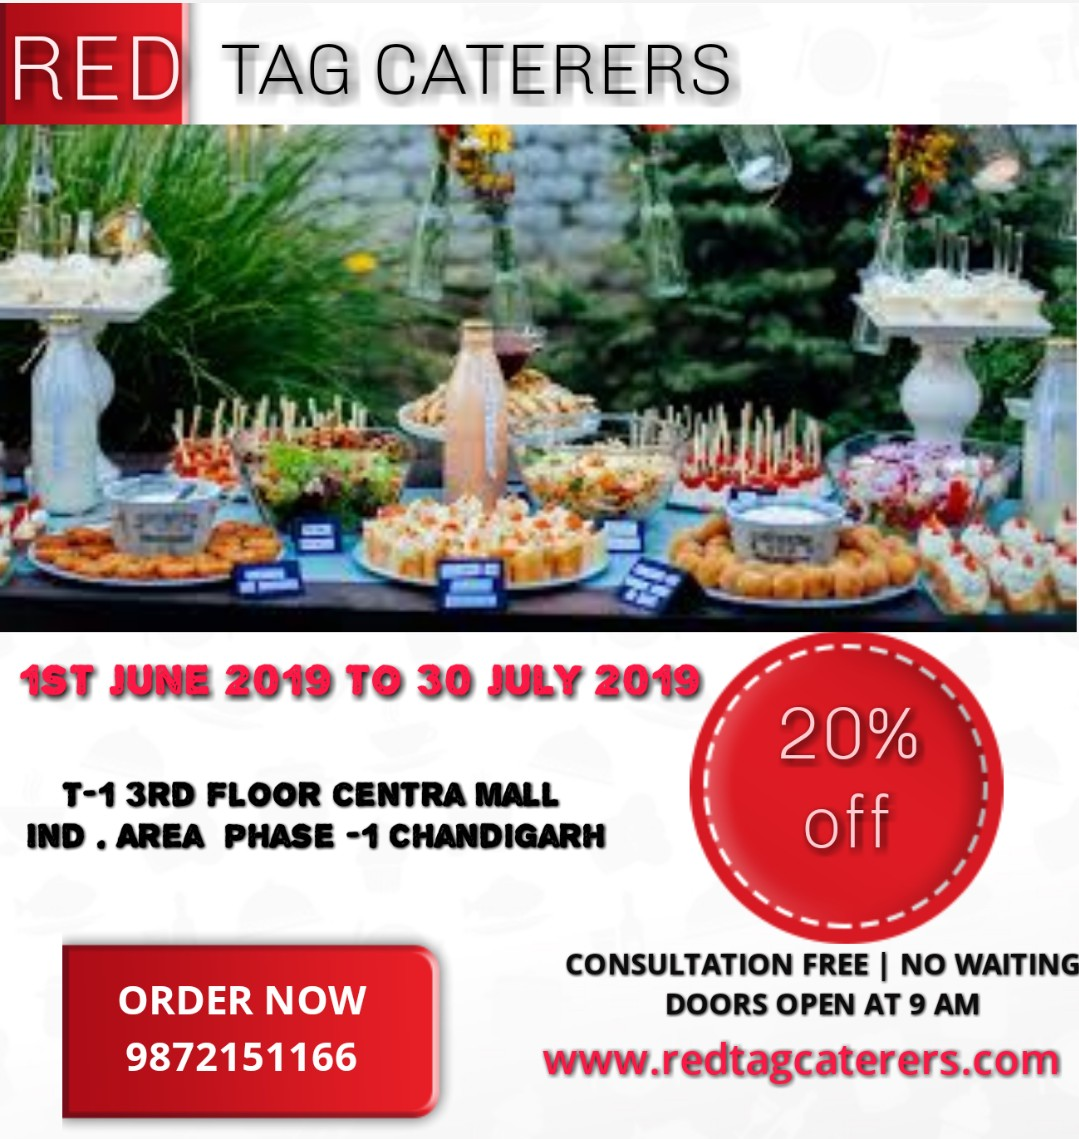 Best caterers in Mohali    Red Tag Caterers   Best catering in Mohali, food and beverage in Mohali, best vegetarian catering in Mohali,  - GL43320